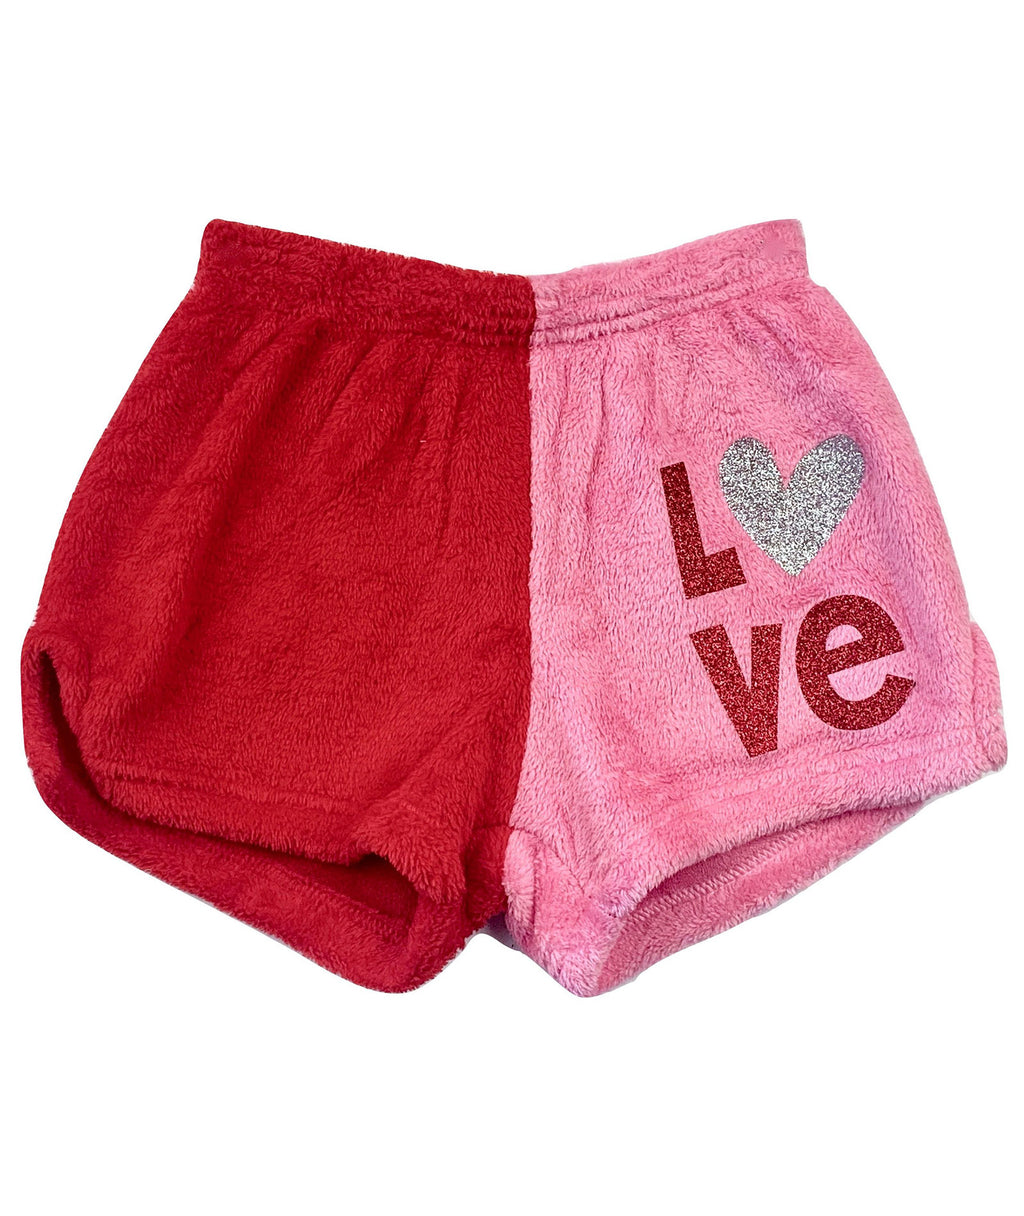 Made with Love and Kisses Girls Red/Pink Glitter Love/Heart Shorts